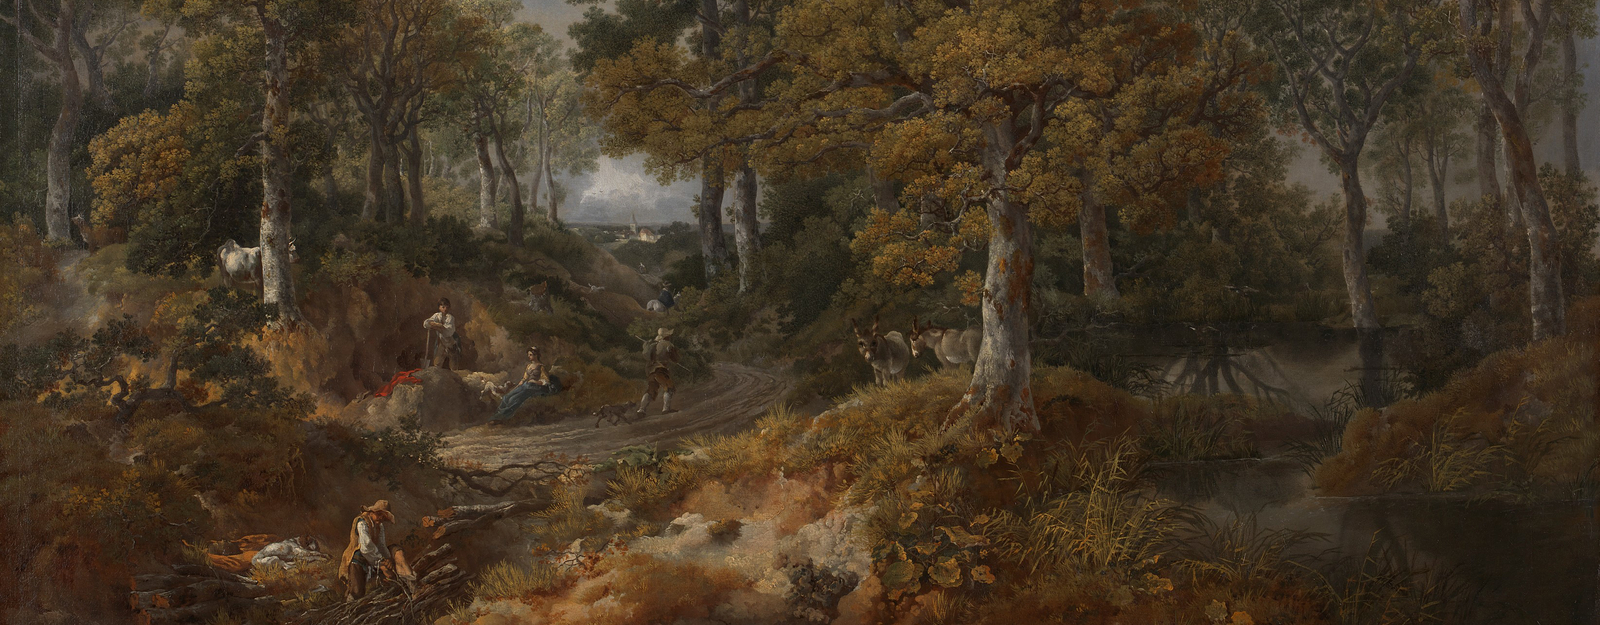 Detail from Gainsborough's 'Cornard Wood', National Gallery